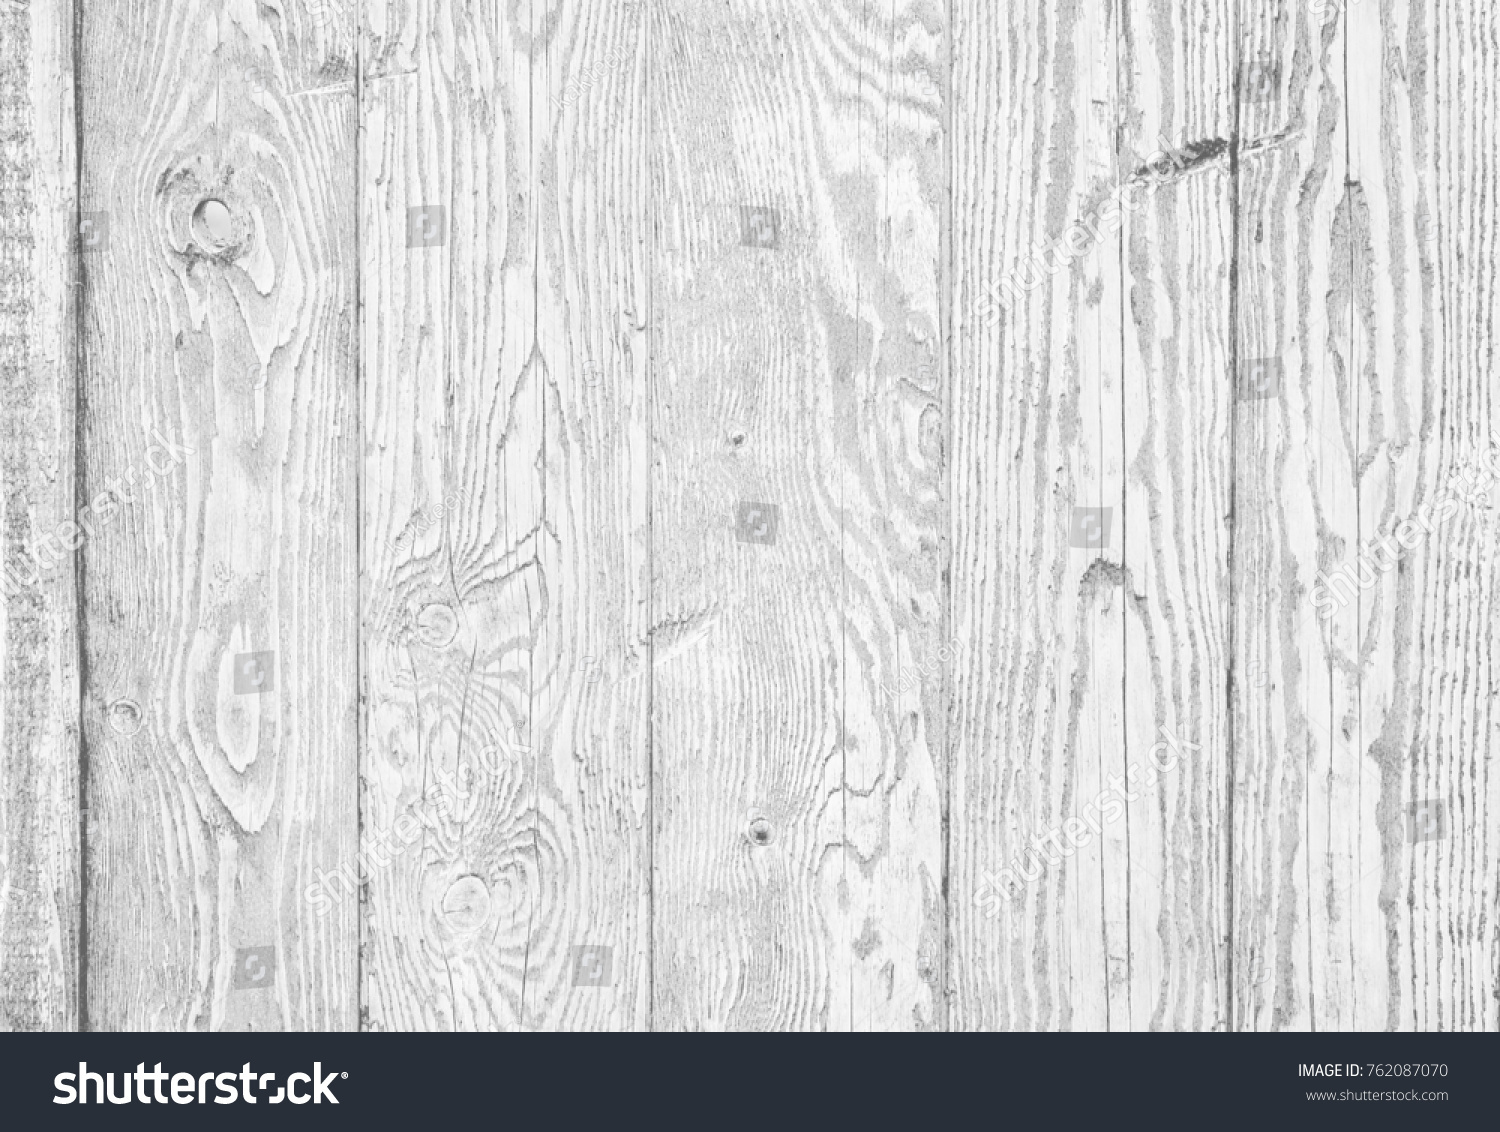 White Wood Texture Background Of Distressed Pine With Knots Natural Wooden Wallpaper